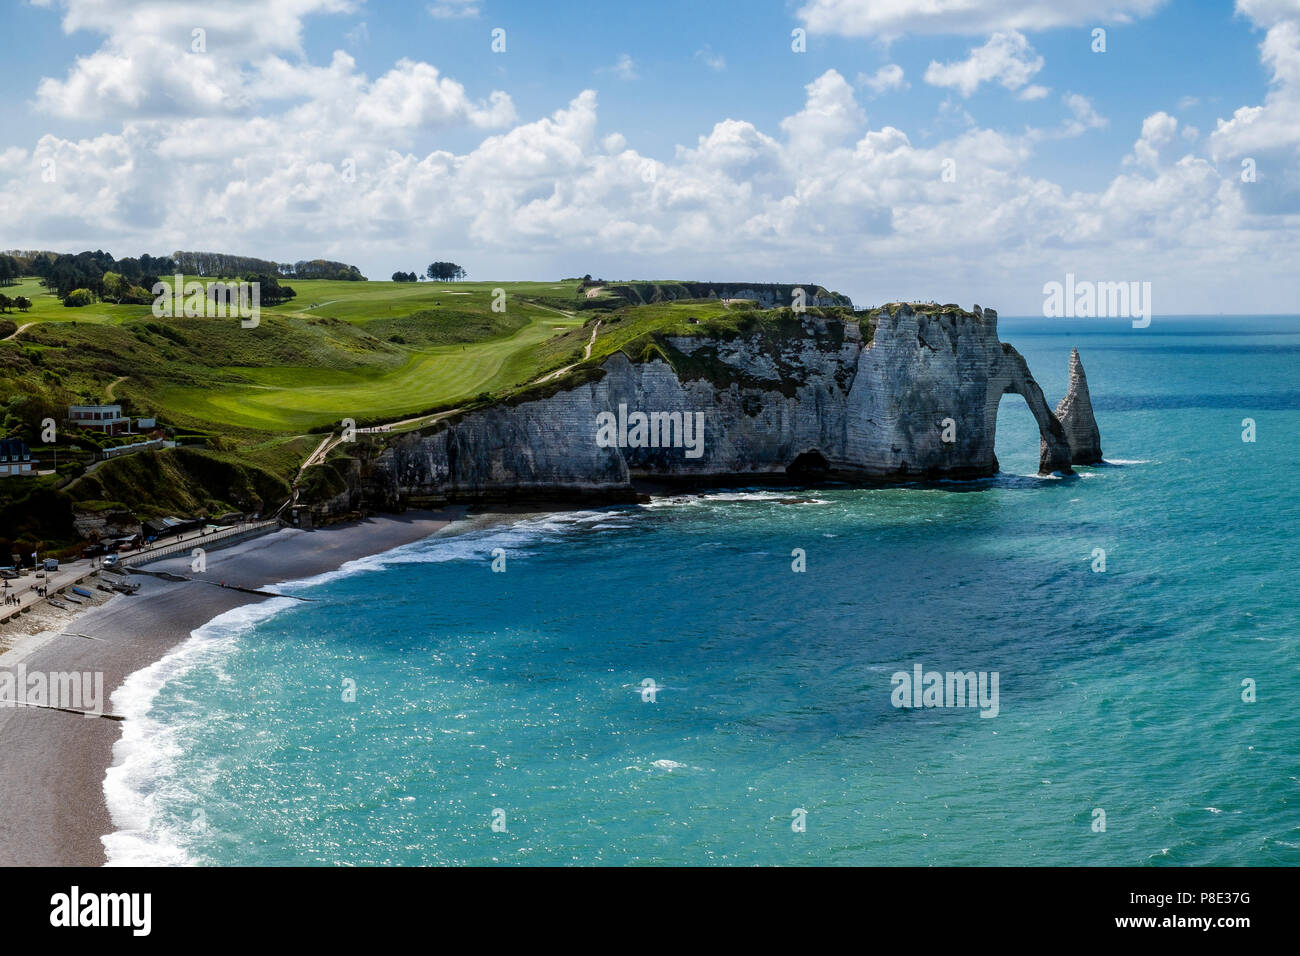 The well manicured greens of Etretat golf course on the cliff top of Etretat bay above L'Aiguille or the Needle sea stack and a natural stone arch. - Stock Image